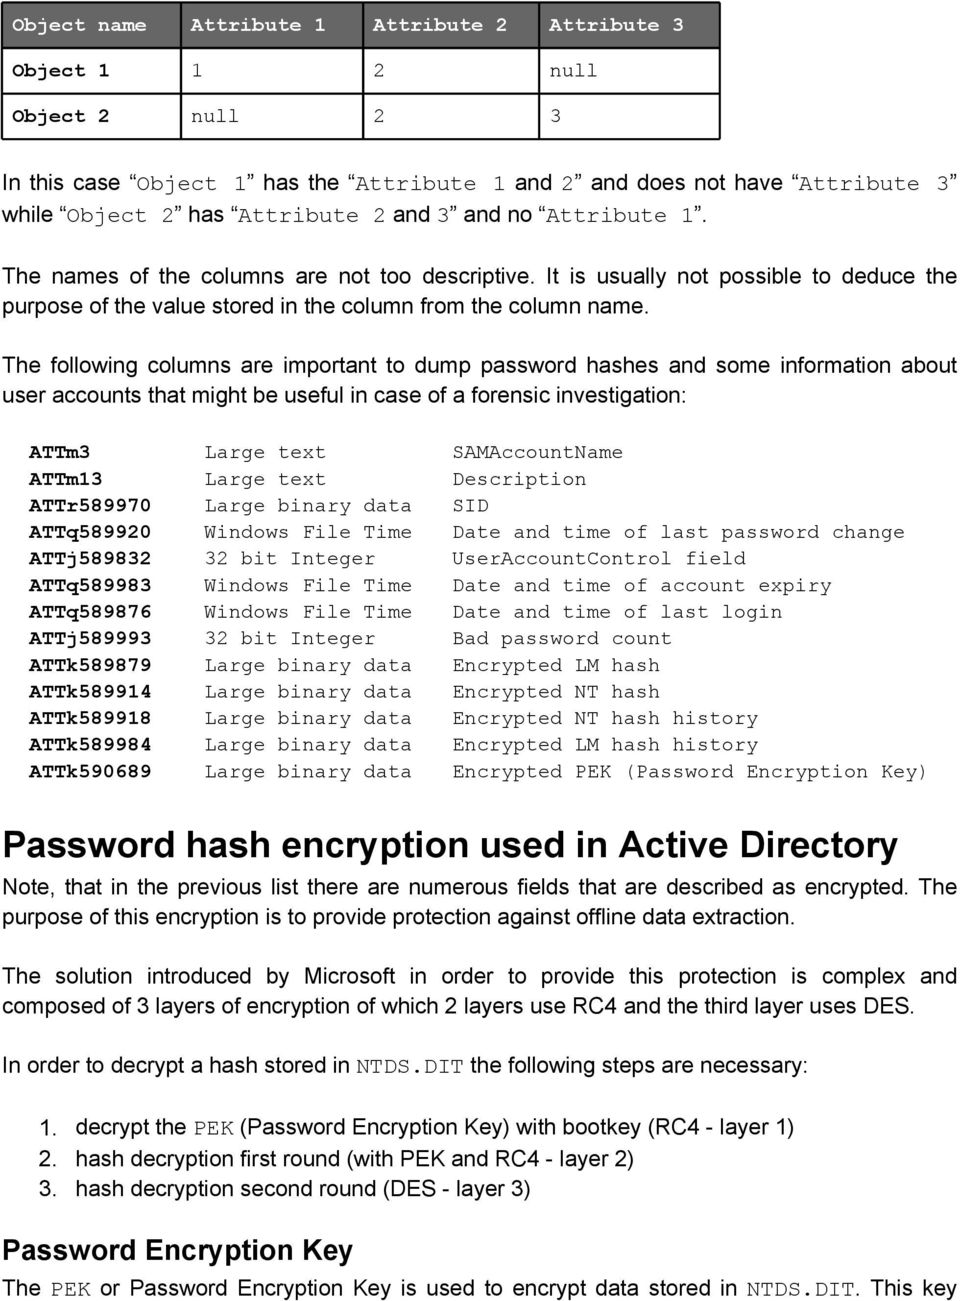 Active Directory Offline Hash Dump and Forensic Analysis - PDF